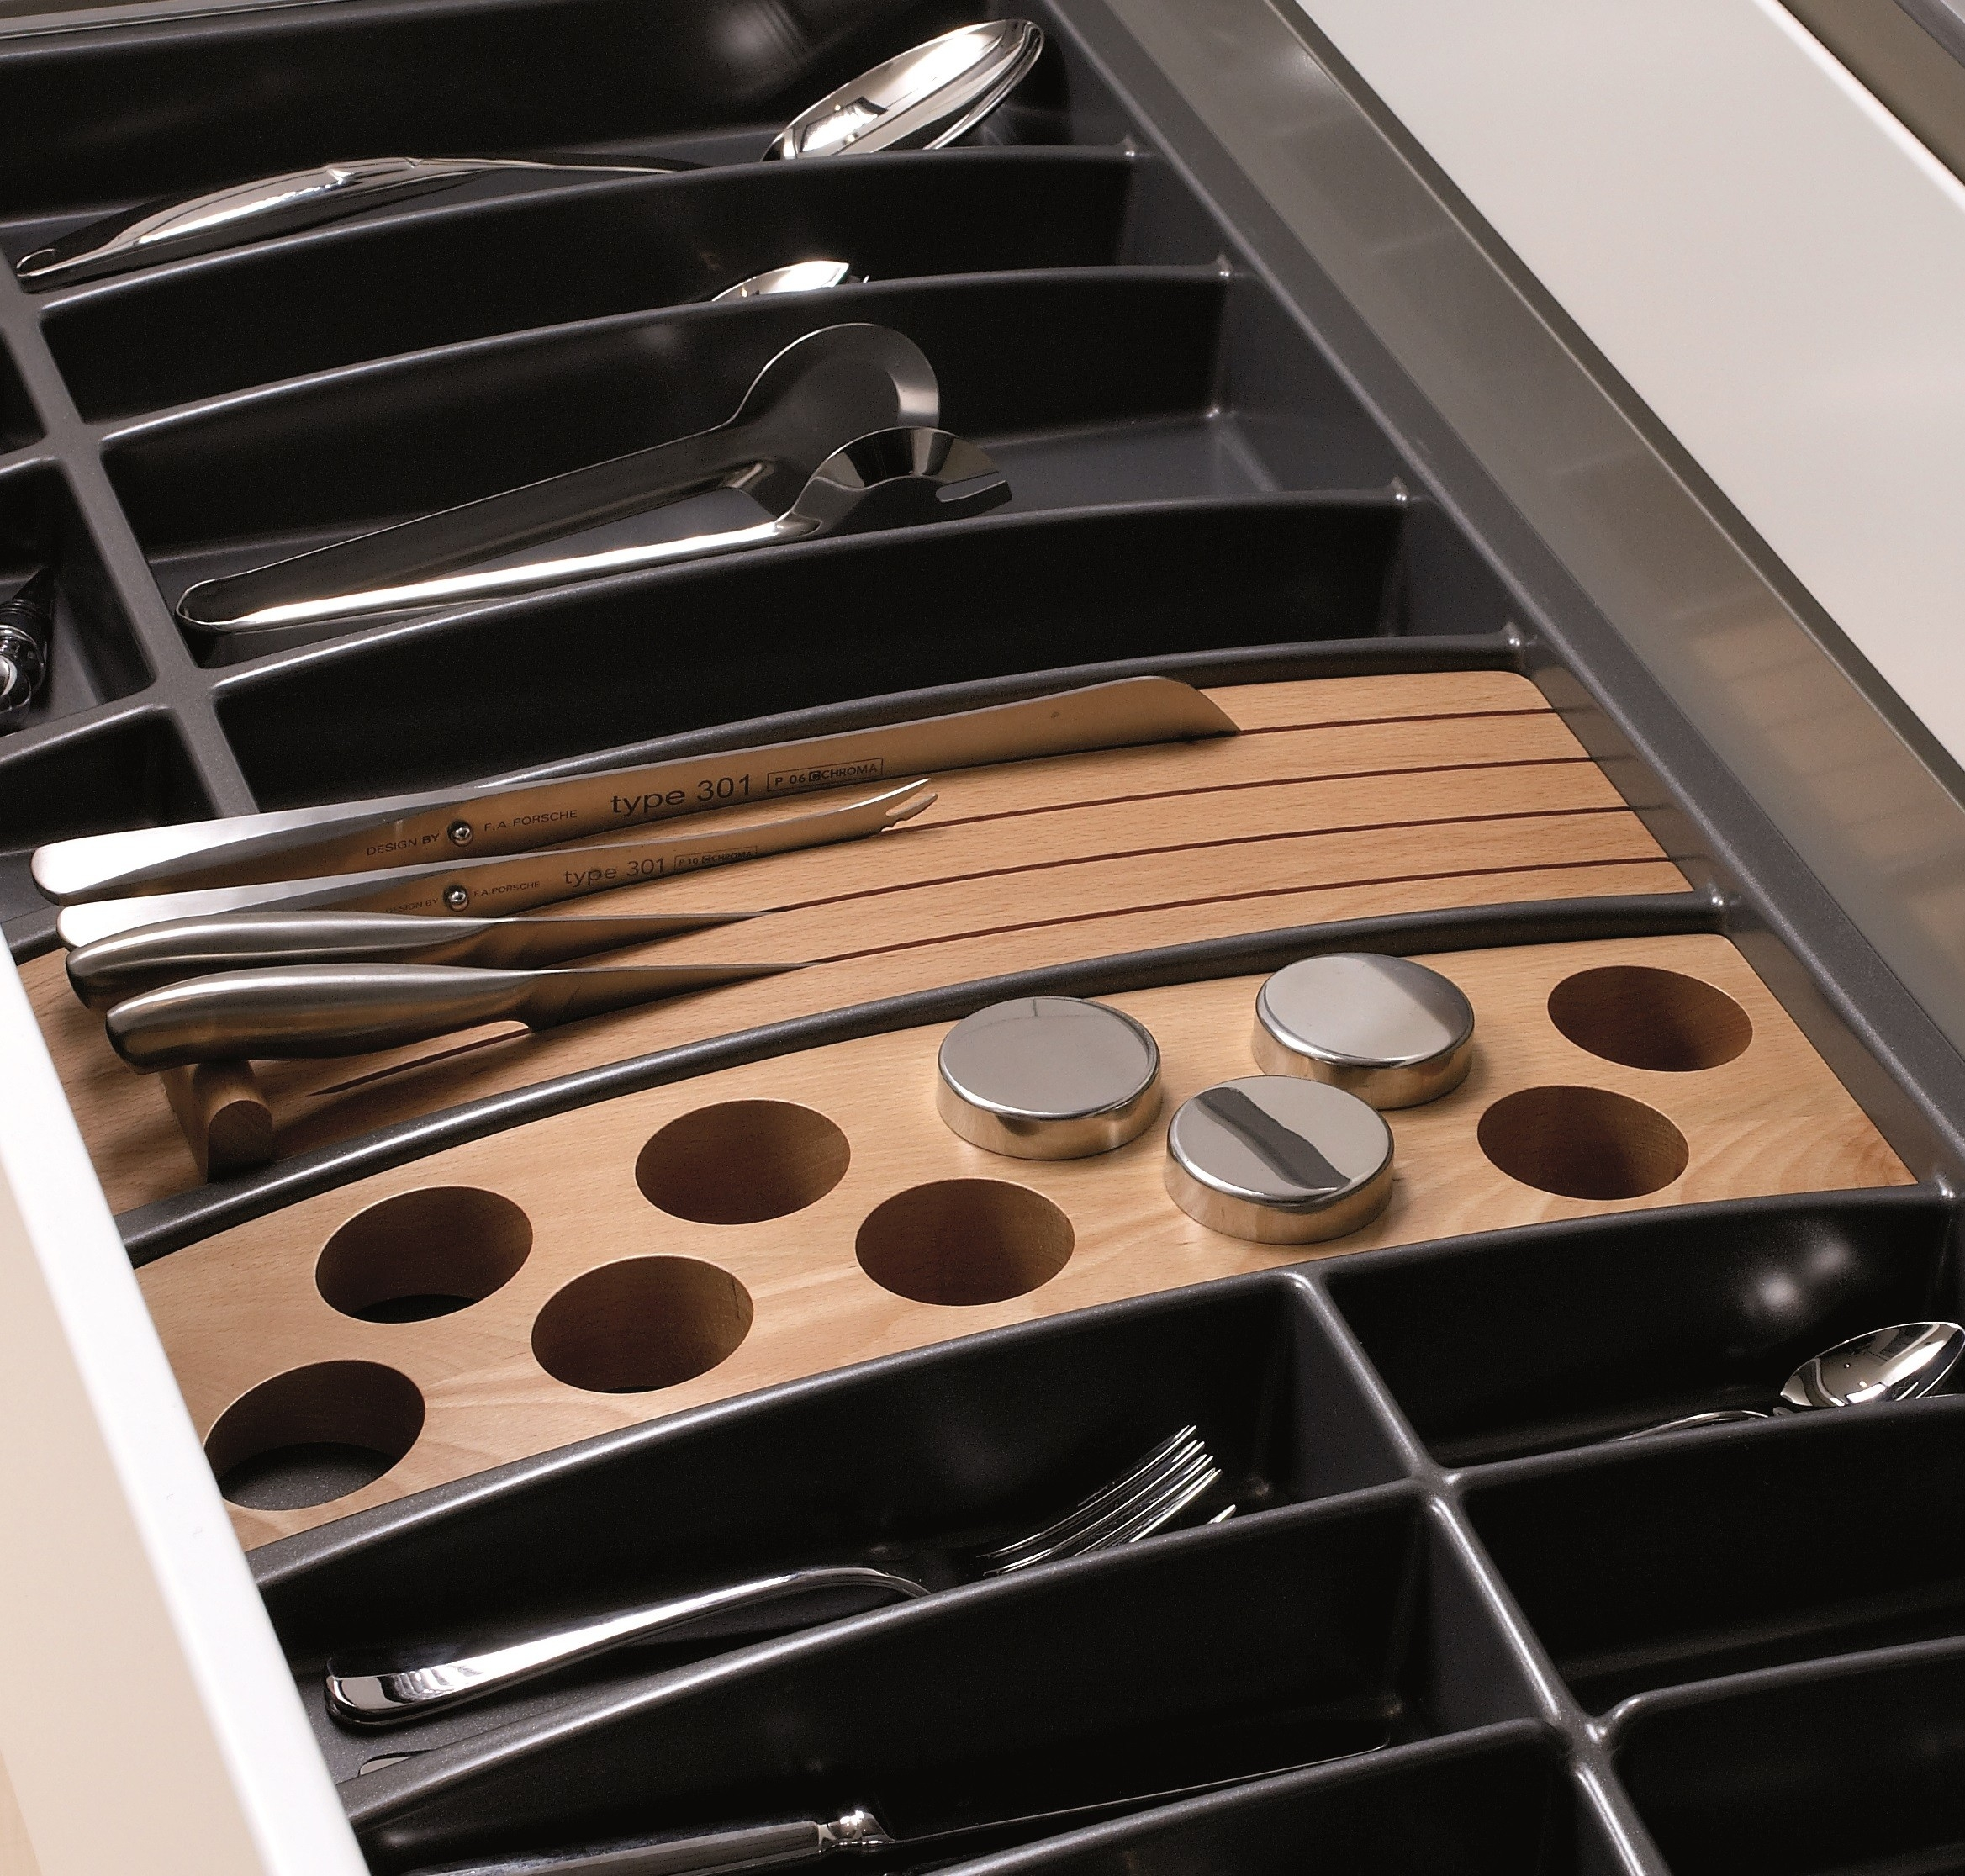 Impala Plastika Drawer Organisers: Elegant Yet Functional